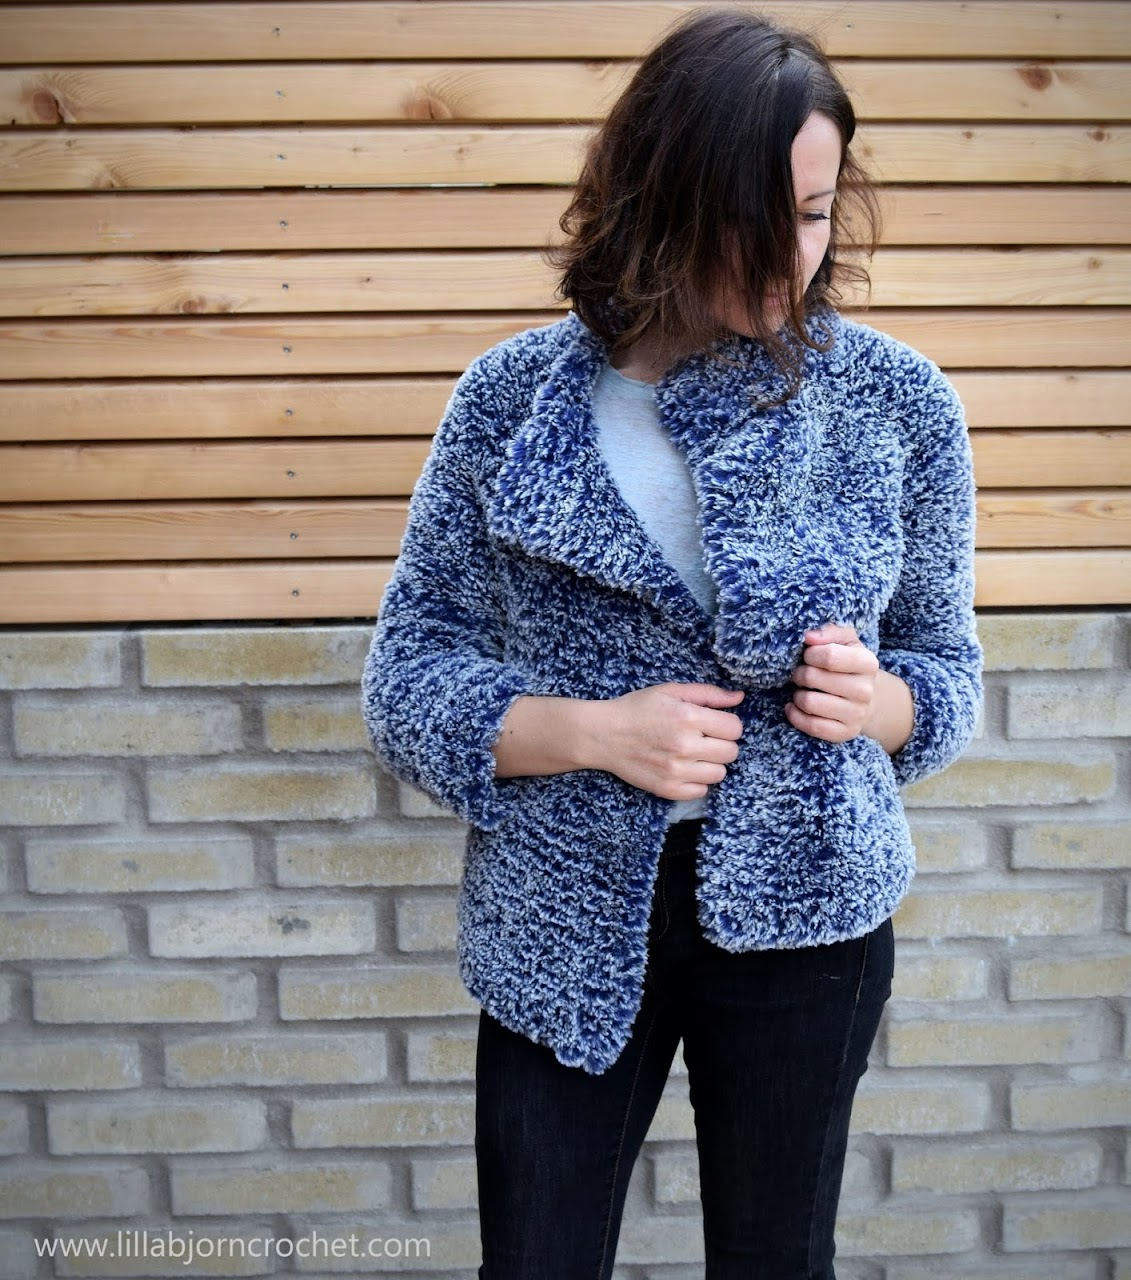 Free knitting pattern for beginners